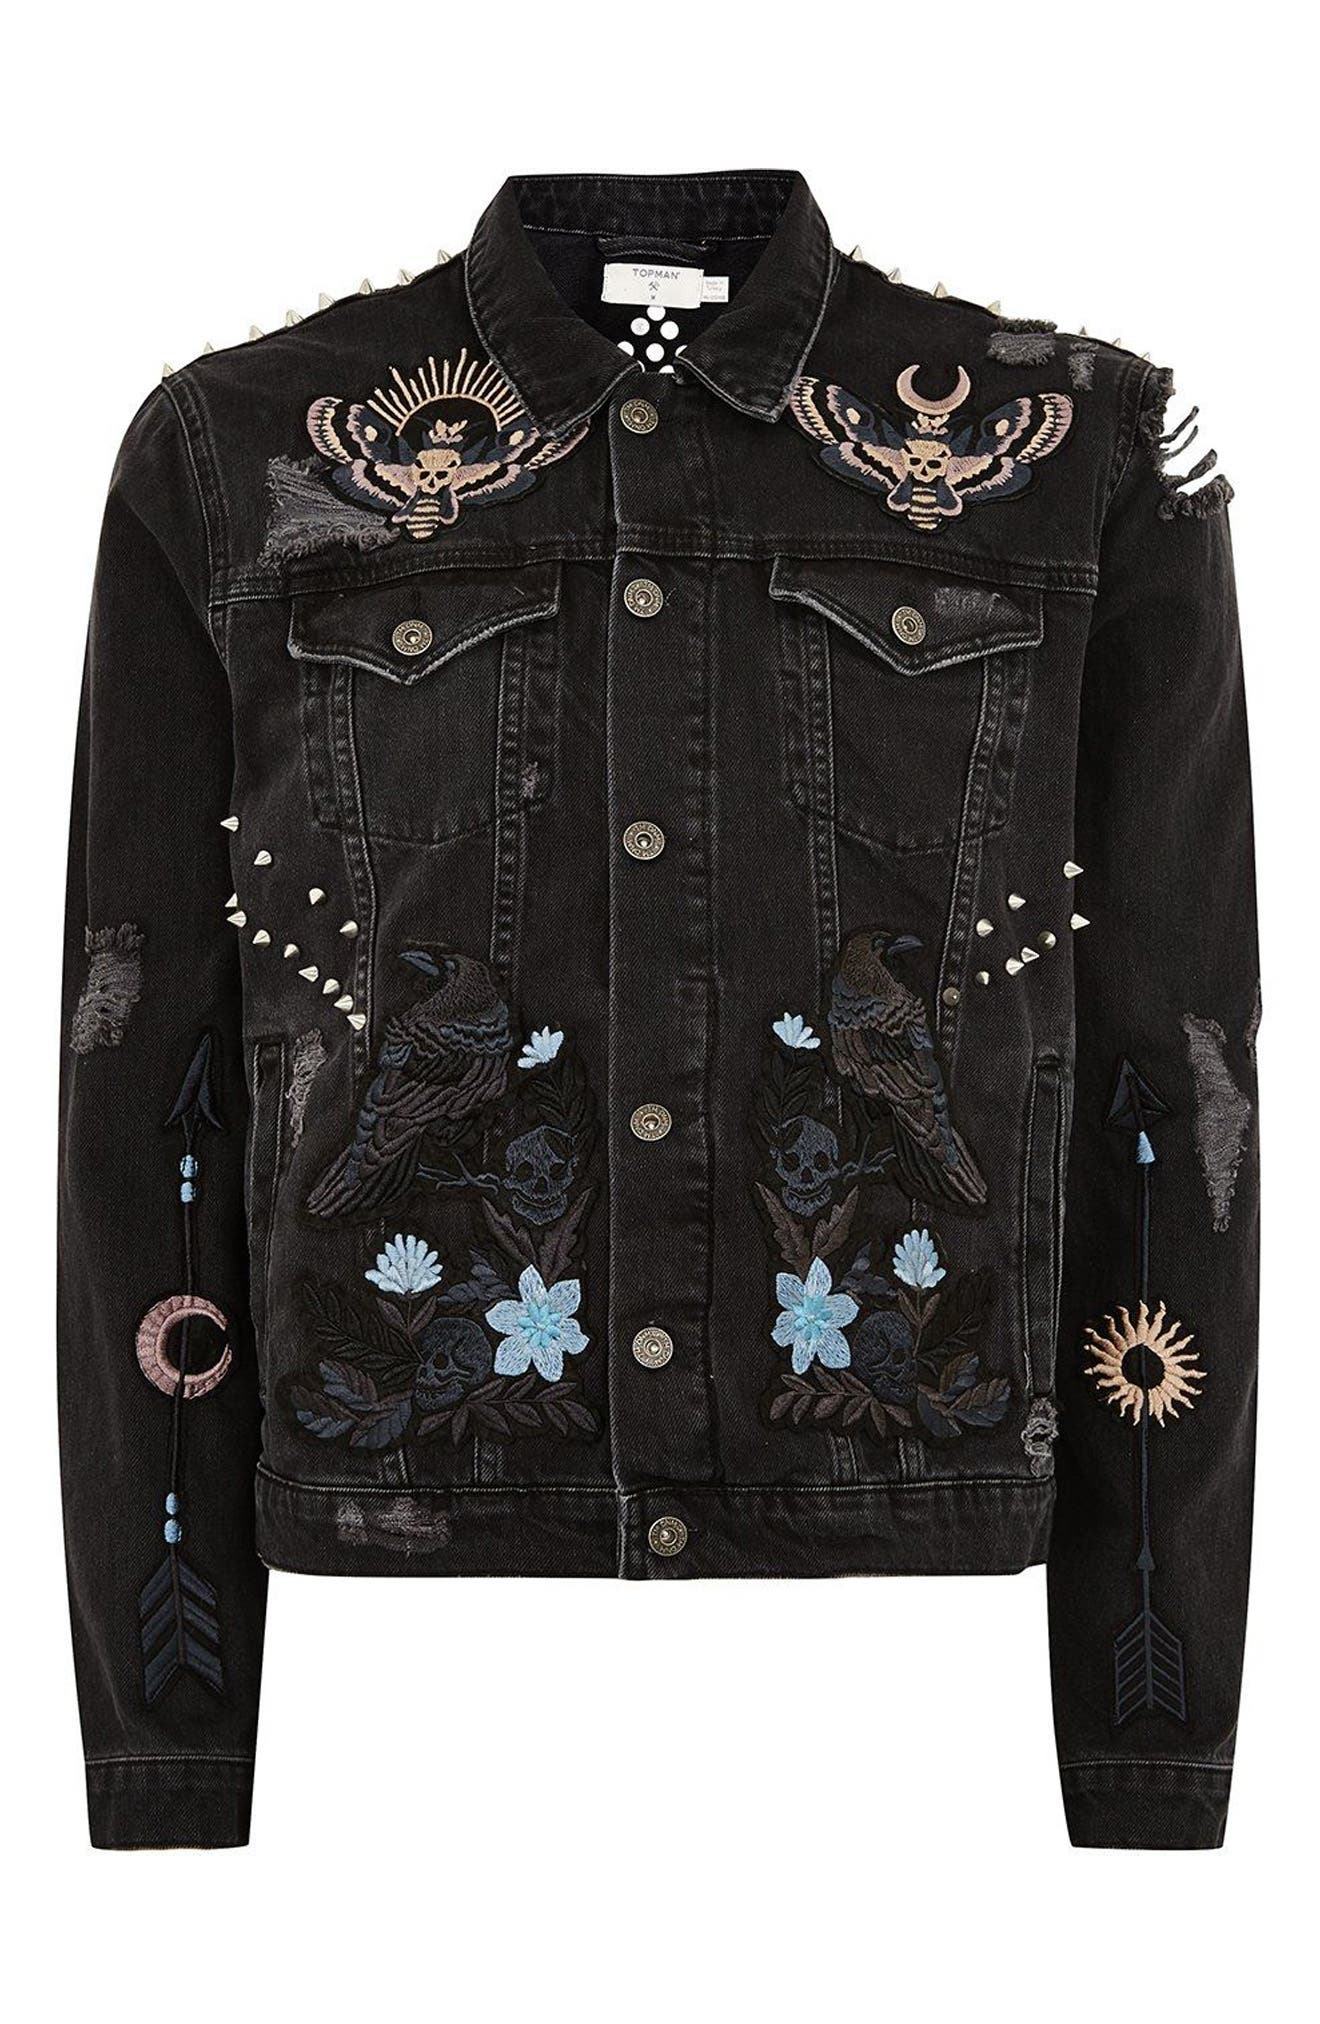 Sleepy Hollow Slim Fit Denim Jacket with Patches,                             Alternate thumbnail 4, color,                             Black Multi